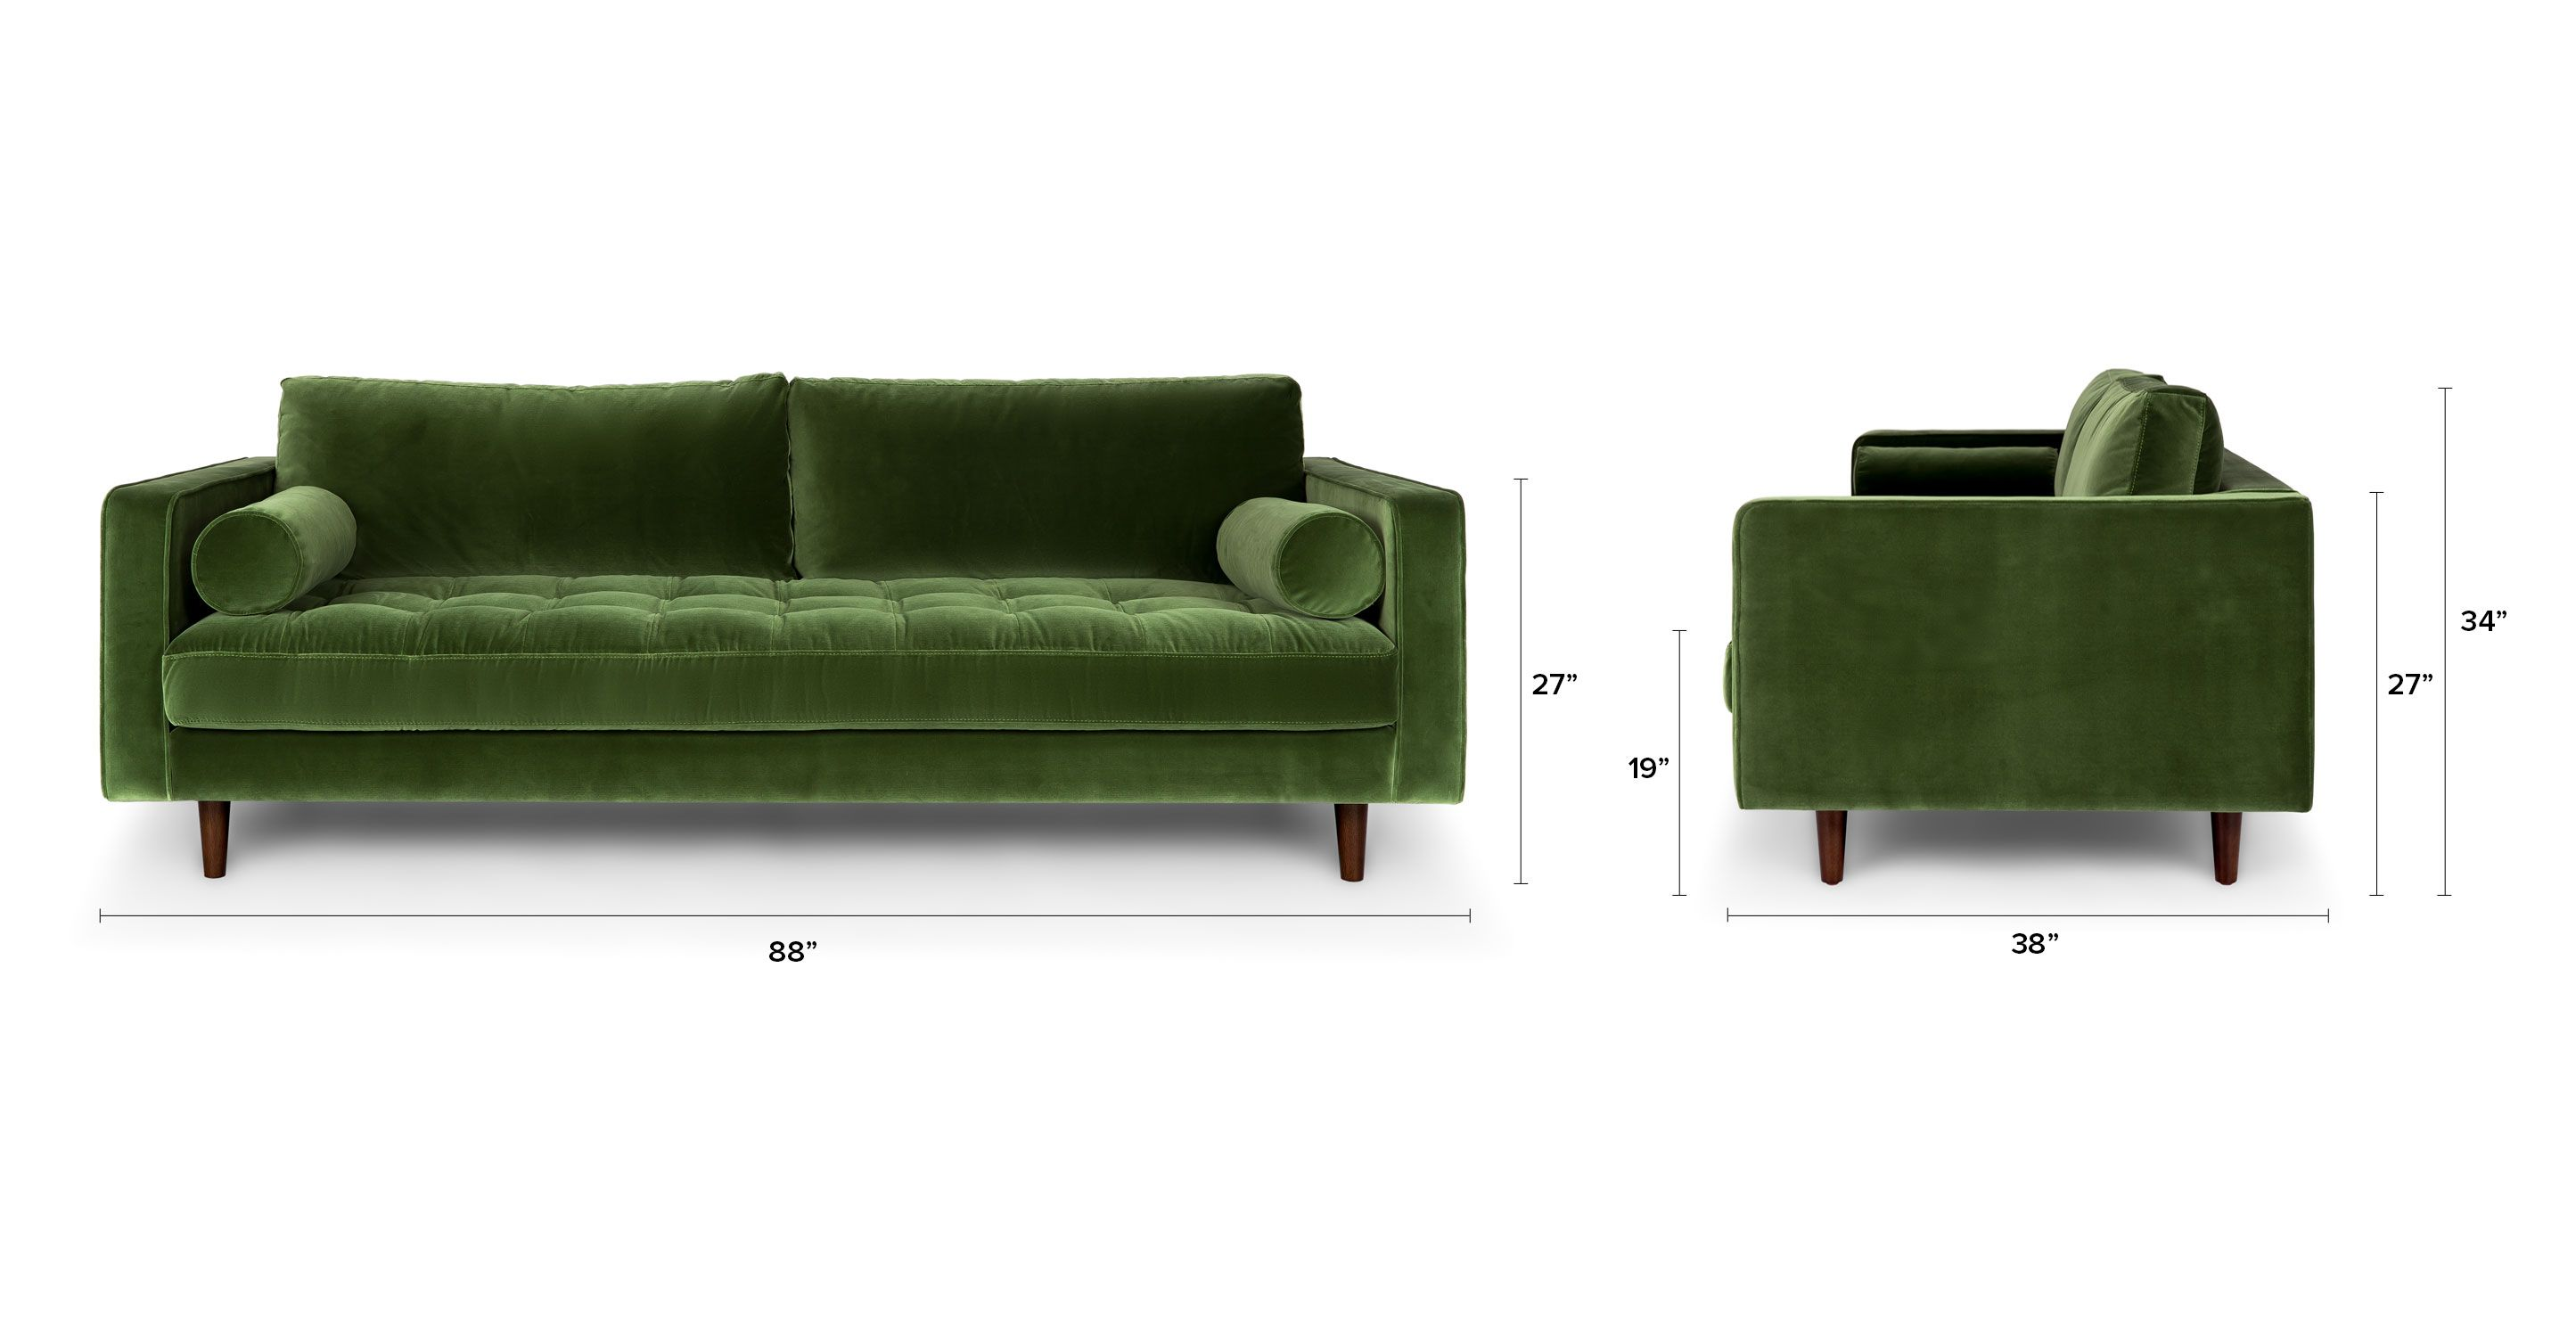 Green Velvet Tufted Sofa Upholstered